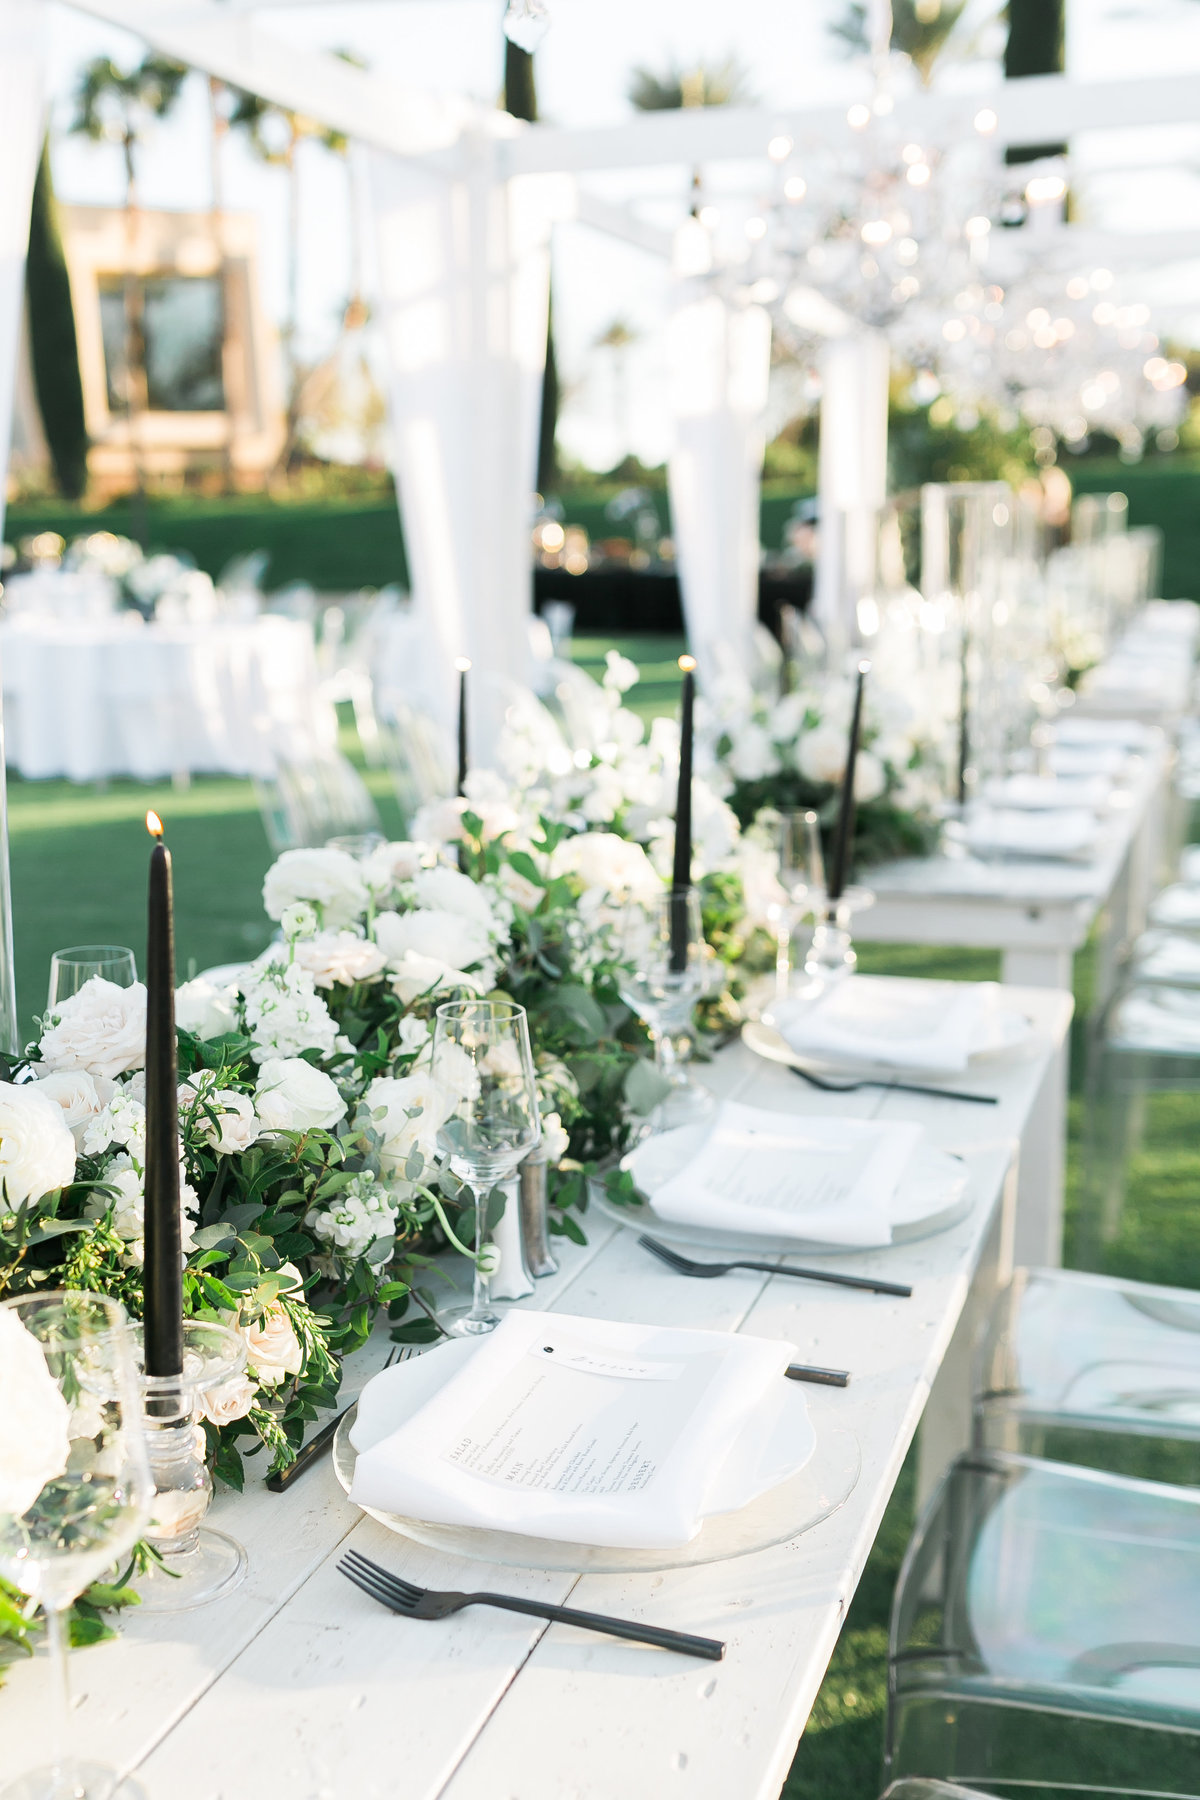 a wedding reception photo with white long tables, black tapered candles, black flatware and white and greenery floral centerpieces below canopies with hanging crystal chandeliers at a wedding at Green Valley Ranch Resort and Spa in Las Vegas